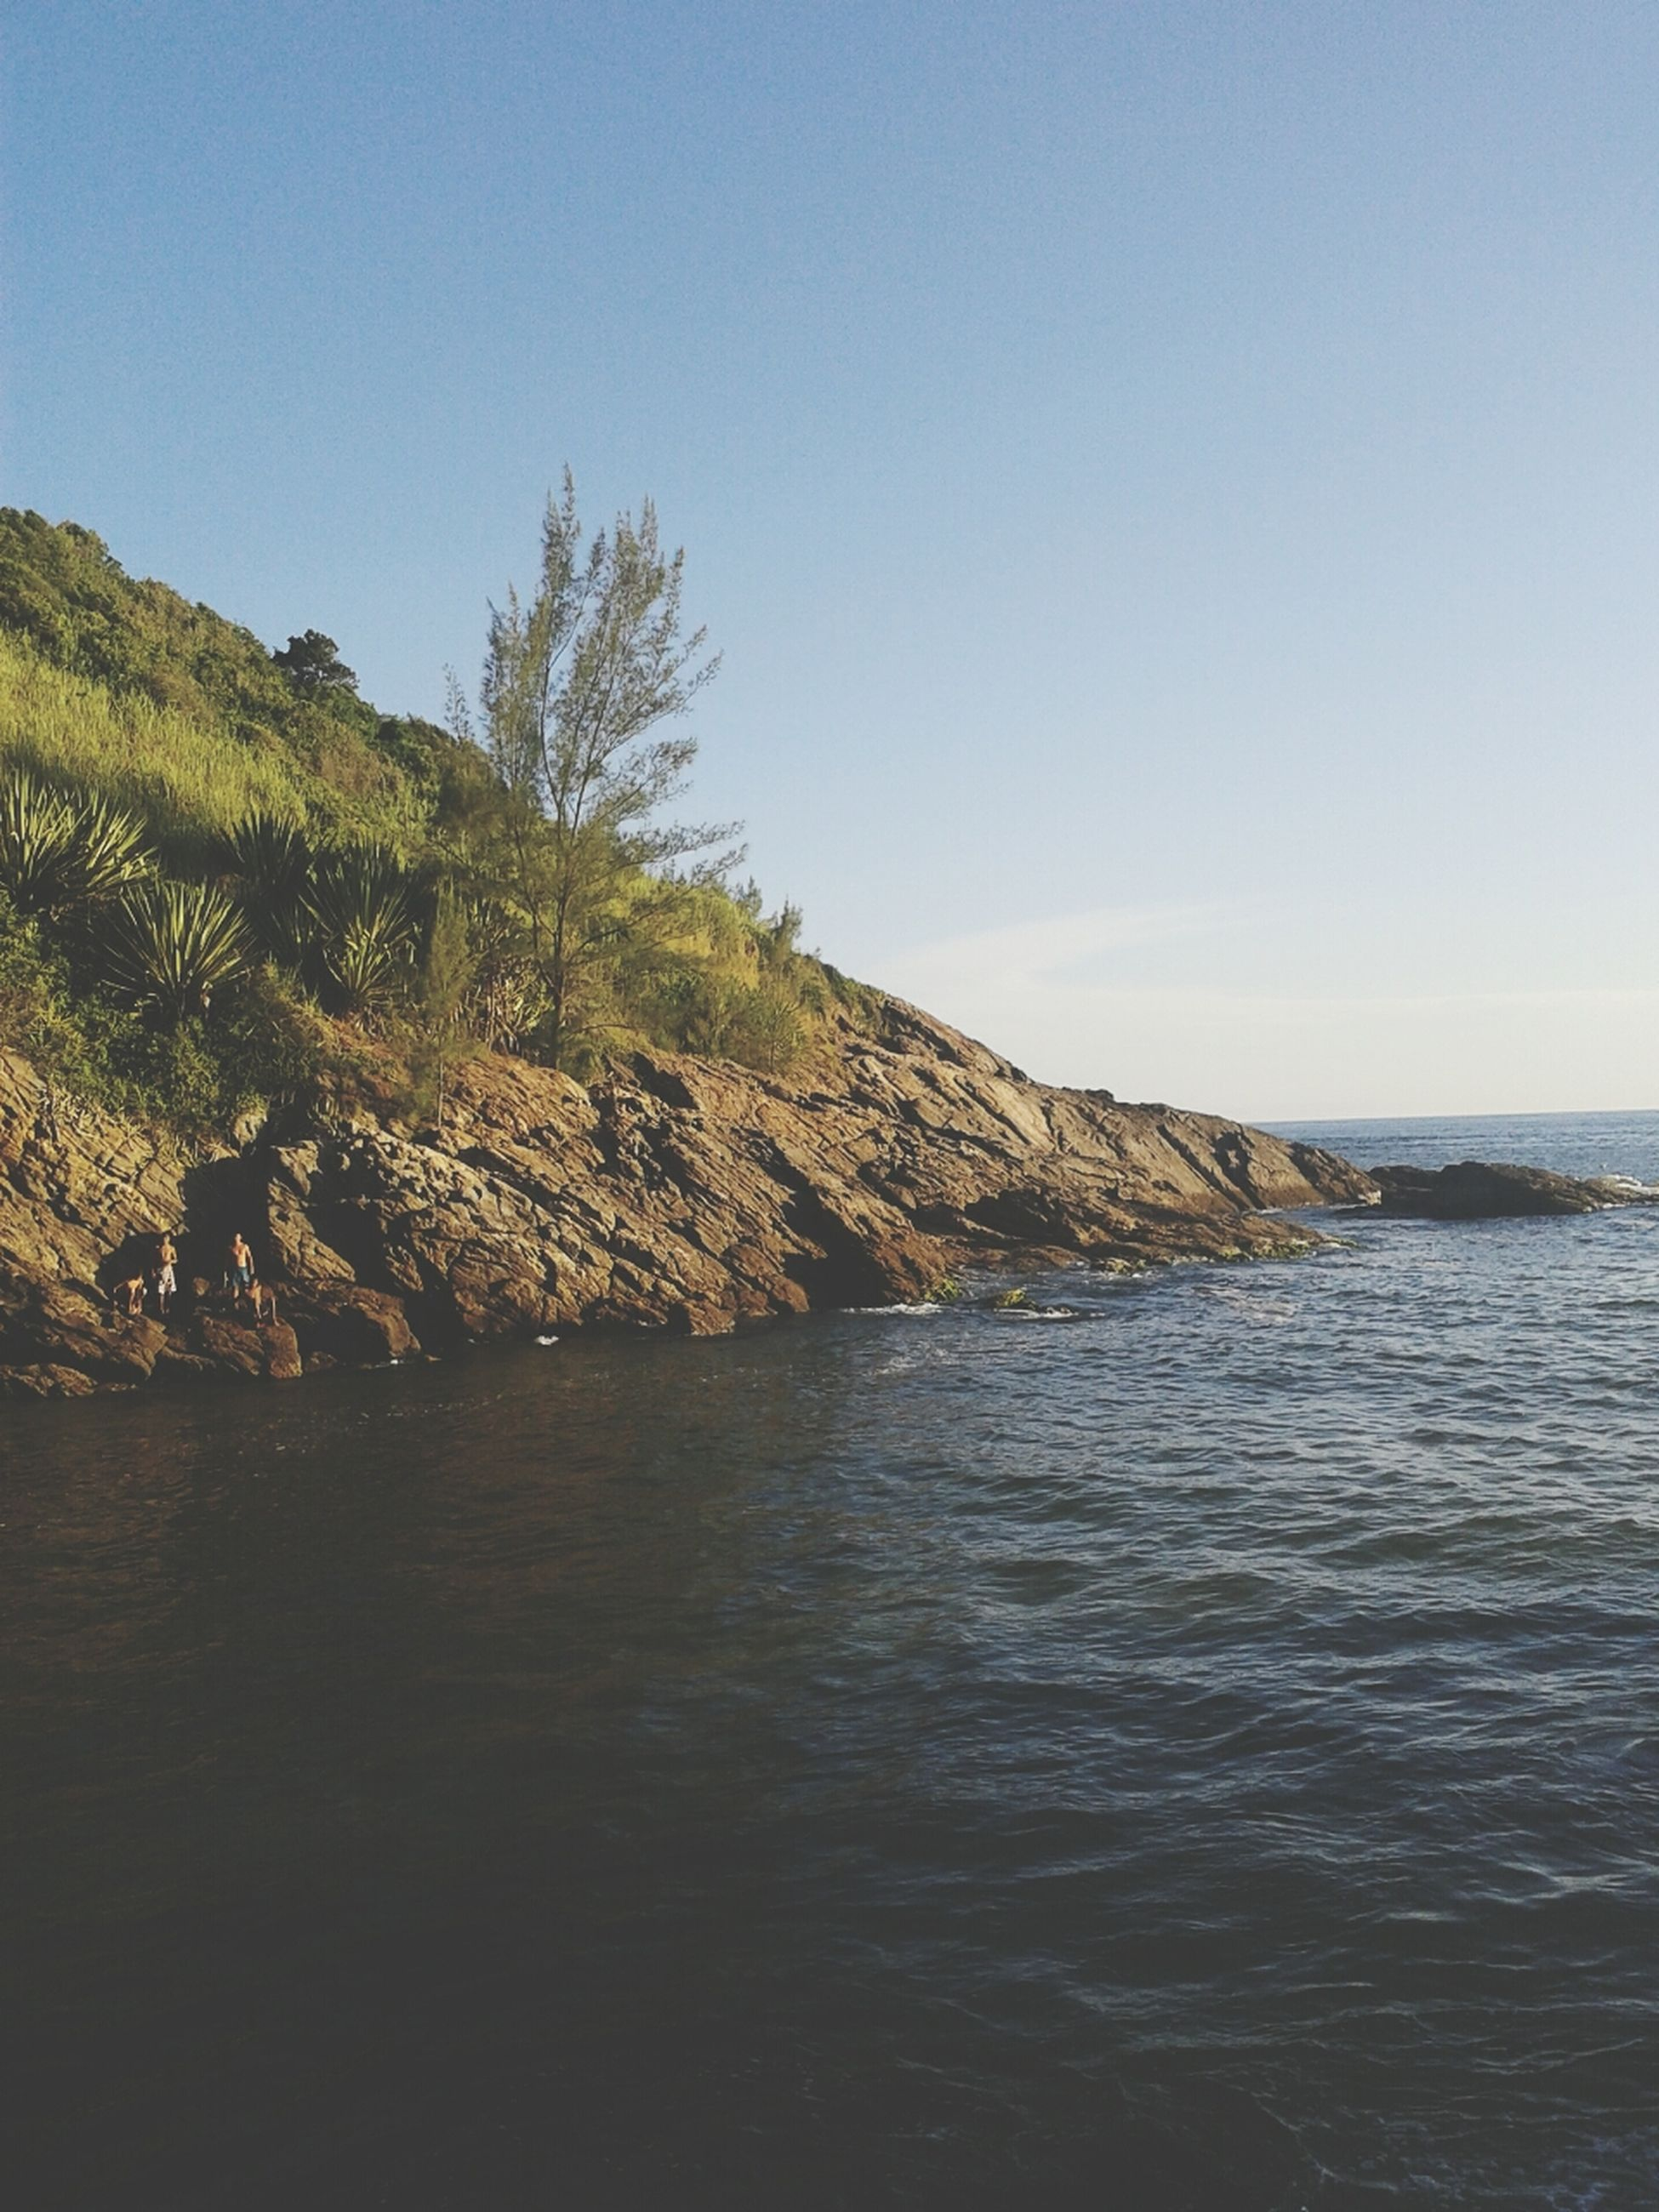 water, clear sky, sea, tranquil scene, tranquility, copy space, scenics, beauty in nature, horizon over water, nature, blue, beach, idyllic, sky, waterfront, shore, rippled, tree, day, calm